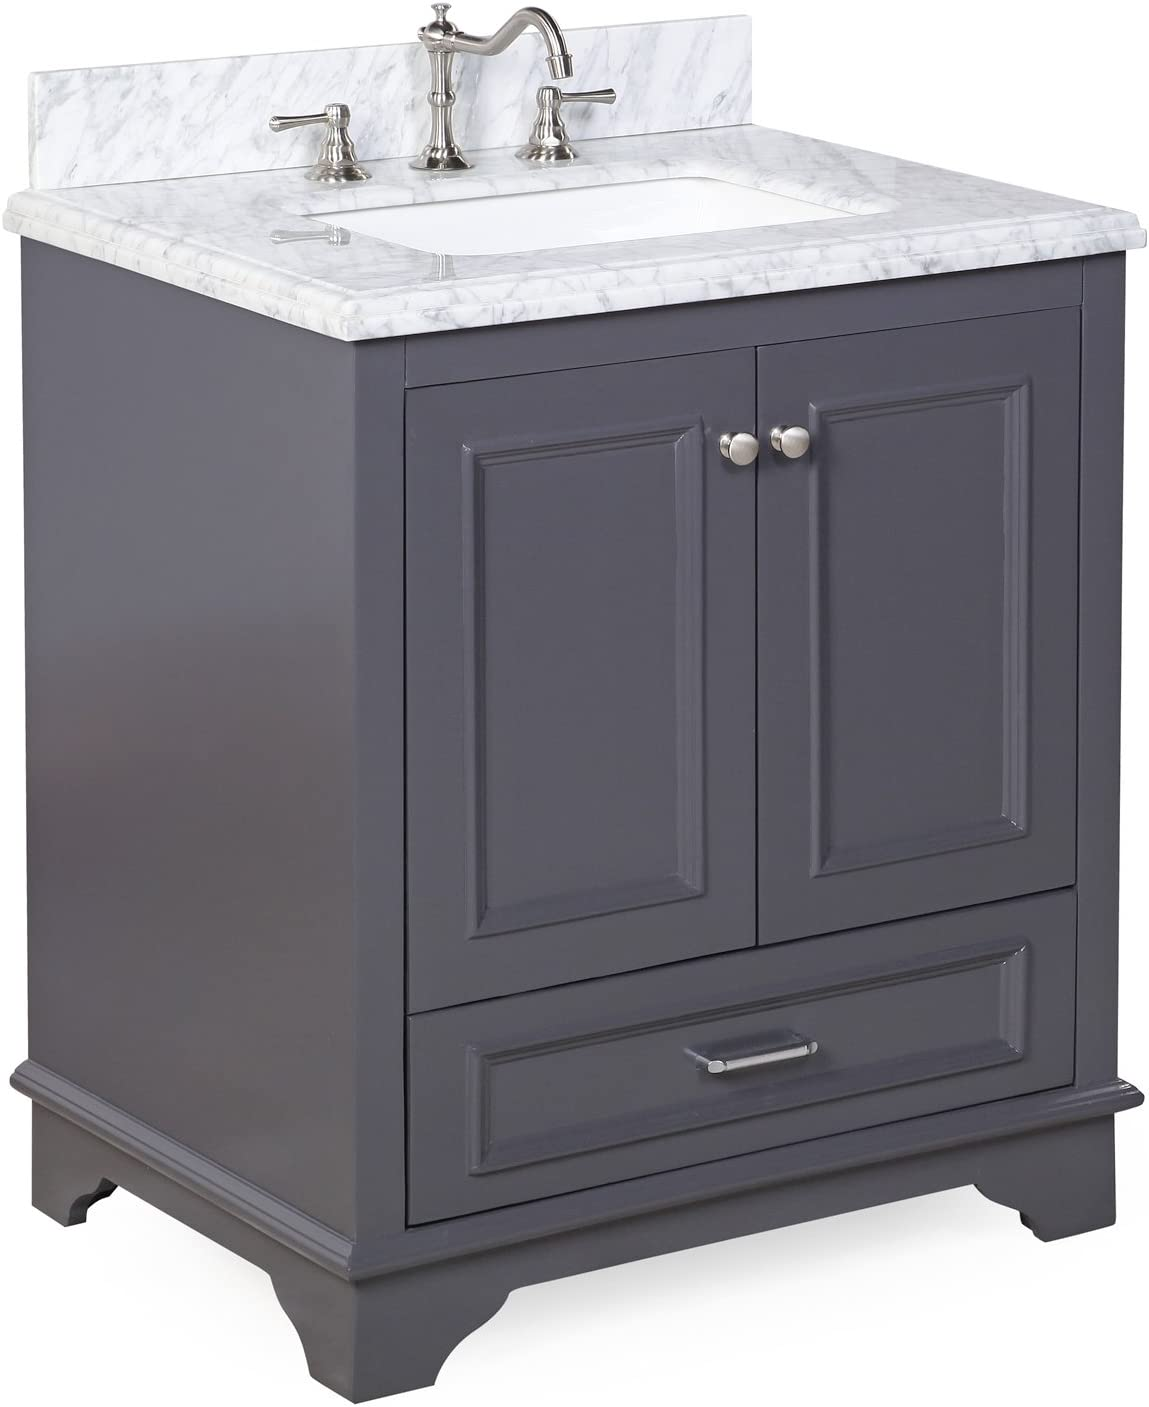 Nantucket 30-inch Bathroom Vanity Carrara Charcoal Gray Includes Charcoal Gray Cabinet with Soft Close Drawers Self Closing Doors, Authentic Italian Carrara Marble Top, and White Ceramic Sink